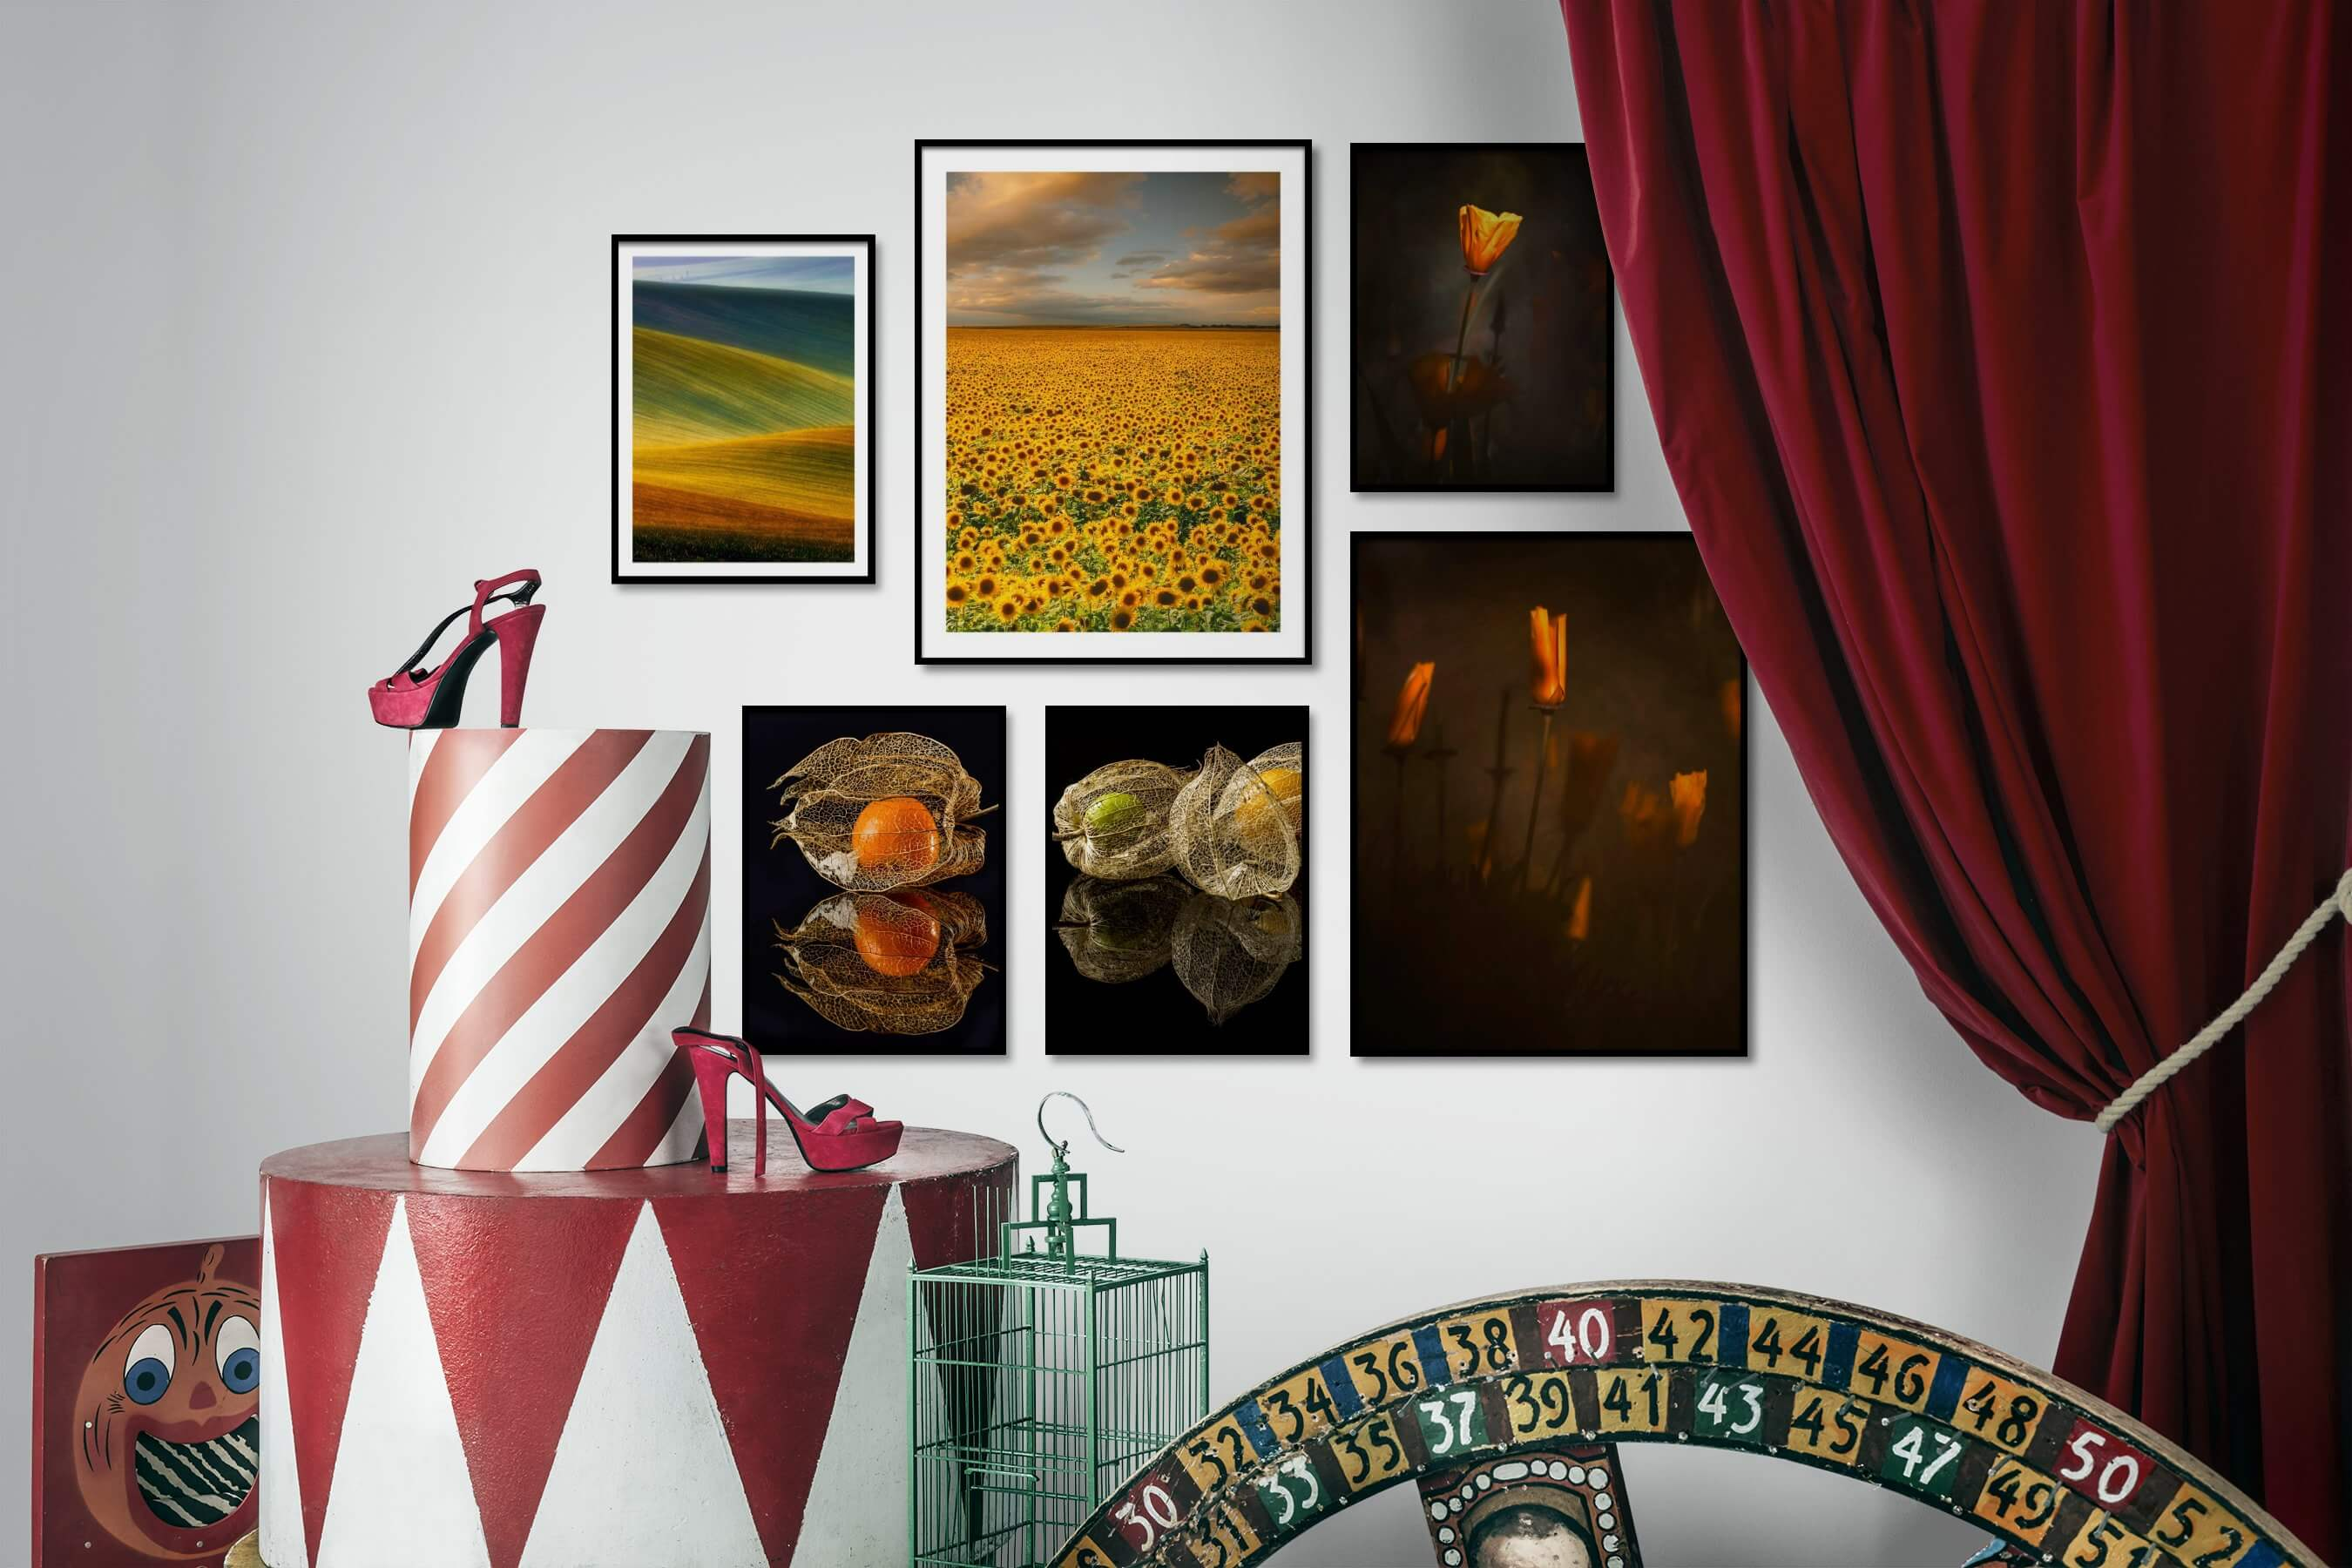 Gallery wall idea with six framed pictures arranged on a wall depicting For the Minimalist, Country Life, For the Moderate, Dark Tones, and Flowers & Plants